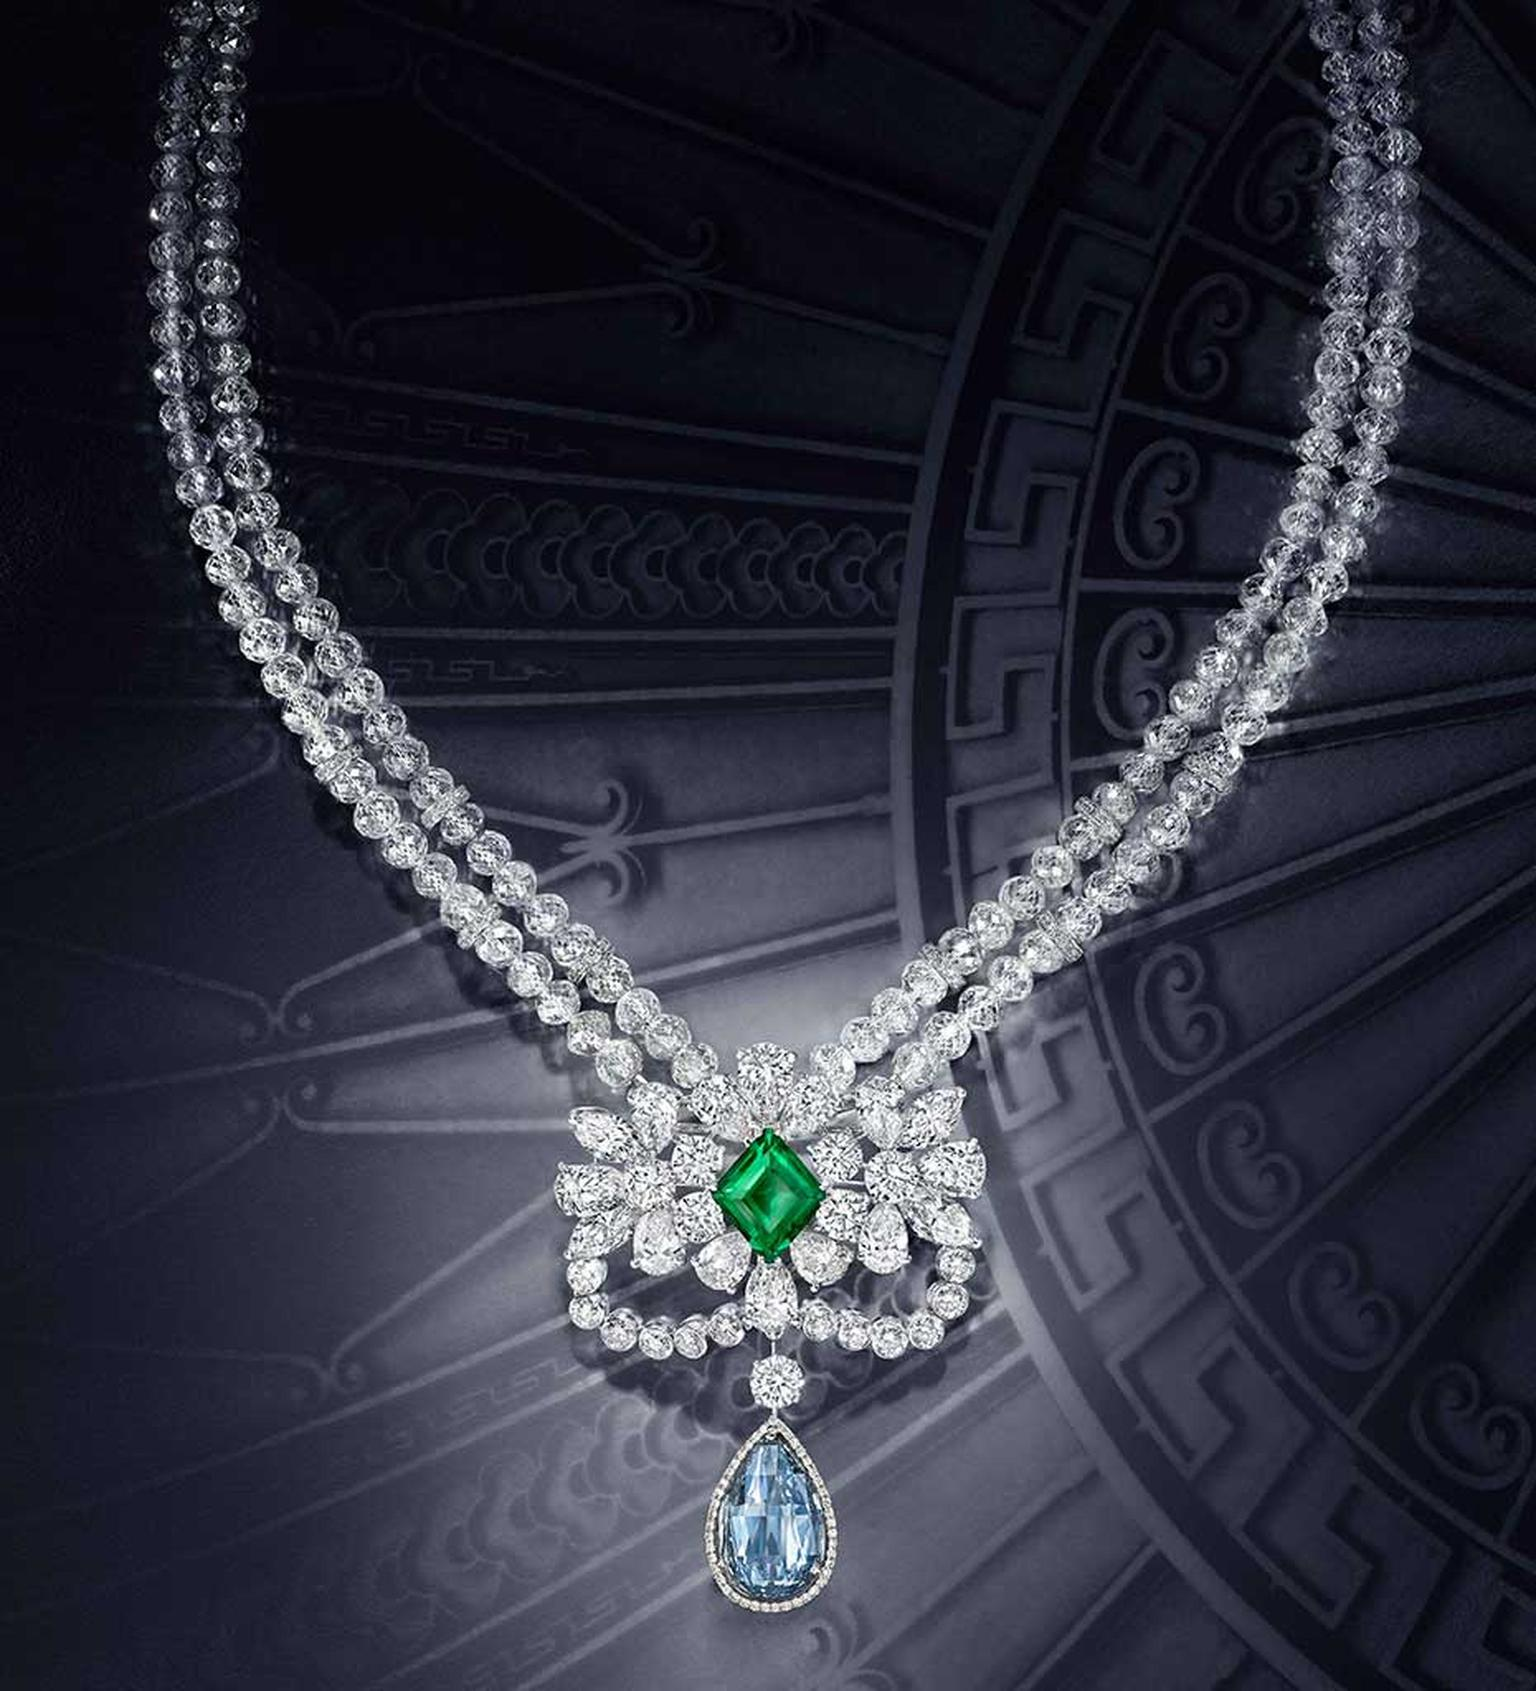 Graff's Le Collier Bleu de Reve necklace features a 10.47ct Fancy Vivid Blue Internally Flawless briolette diamond, above which sits a stunning 4.22 carat old-mine Colombian emerald. The necklace is composed of 192 faceted beaded diamonds.